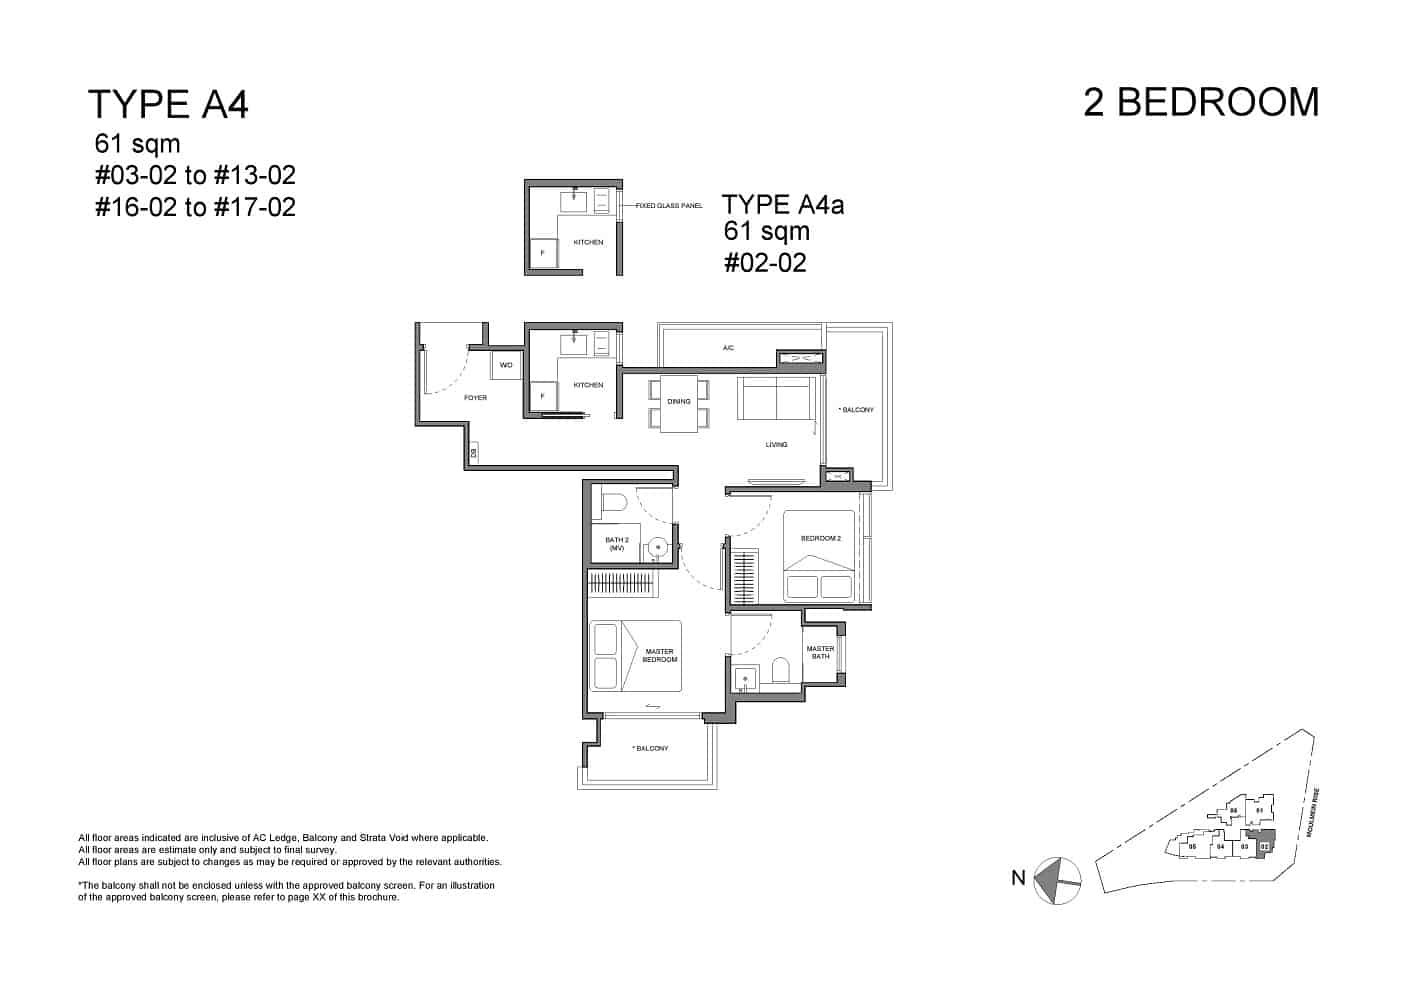 Neu at Novena 2-bedroom Type A4